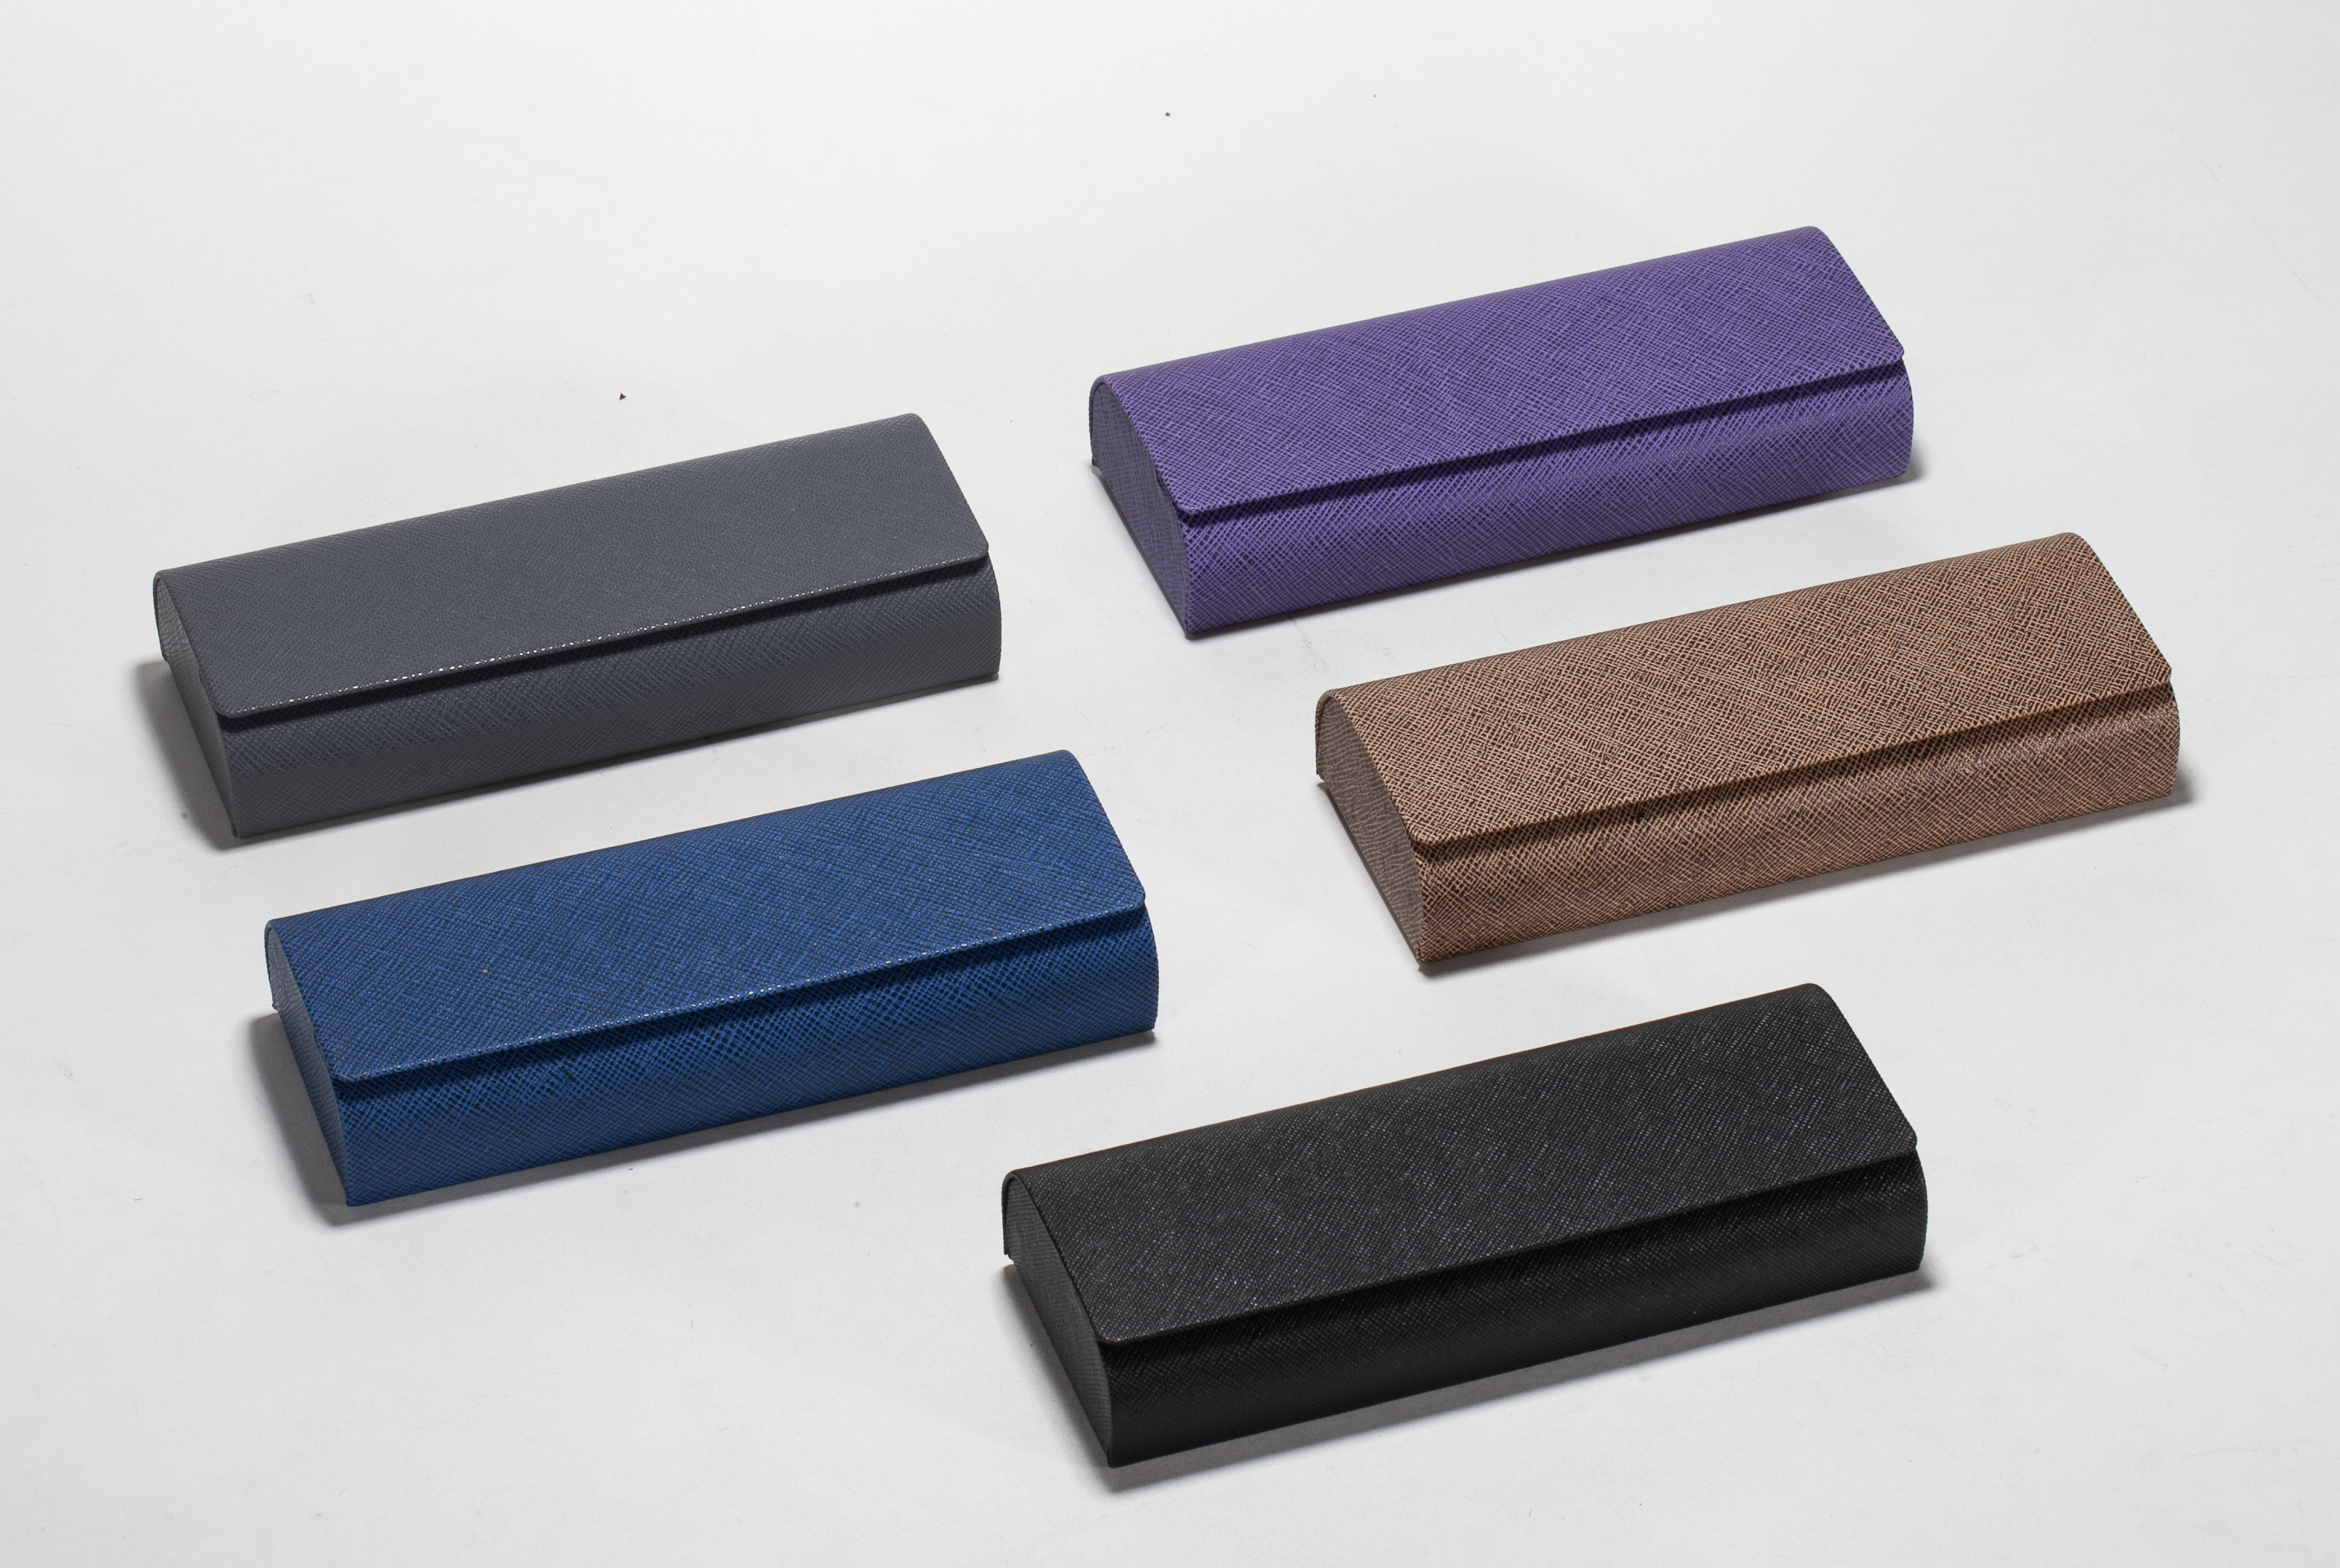 2021 Sunglasses, 5 Different Types of Glasses Cases